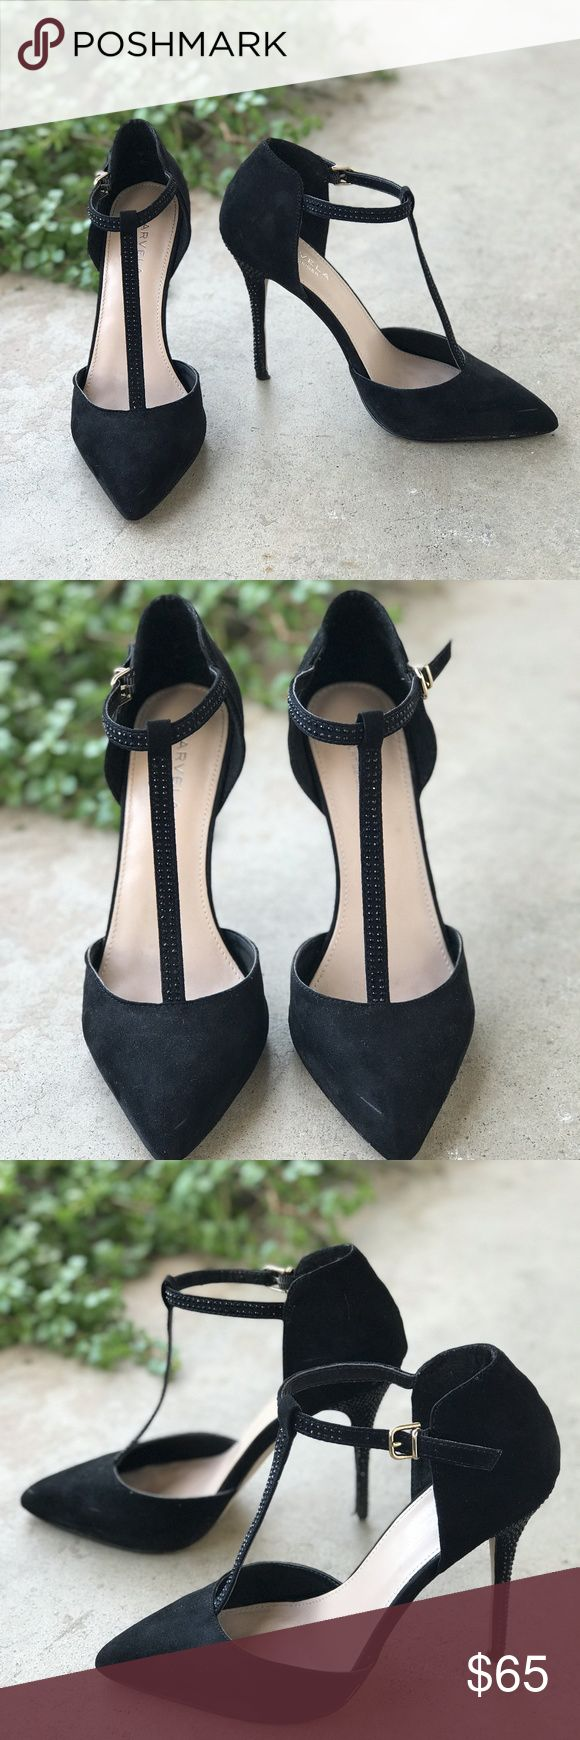 Carvela Kurt Geiger Black T Strap Rhinestone Heels Pointed black heels by Carvela Kurt Geiger with rhinestone straps and heels. Leather upper. Lighty worn with very minor scuffing (like in the toe) but still in great condition with a lot of life left! Size EU 38/US 8. Kurt Geiger Shoes Heels